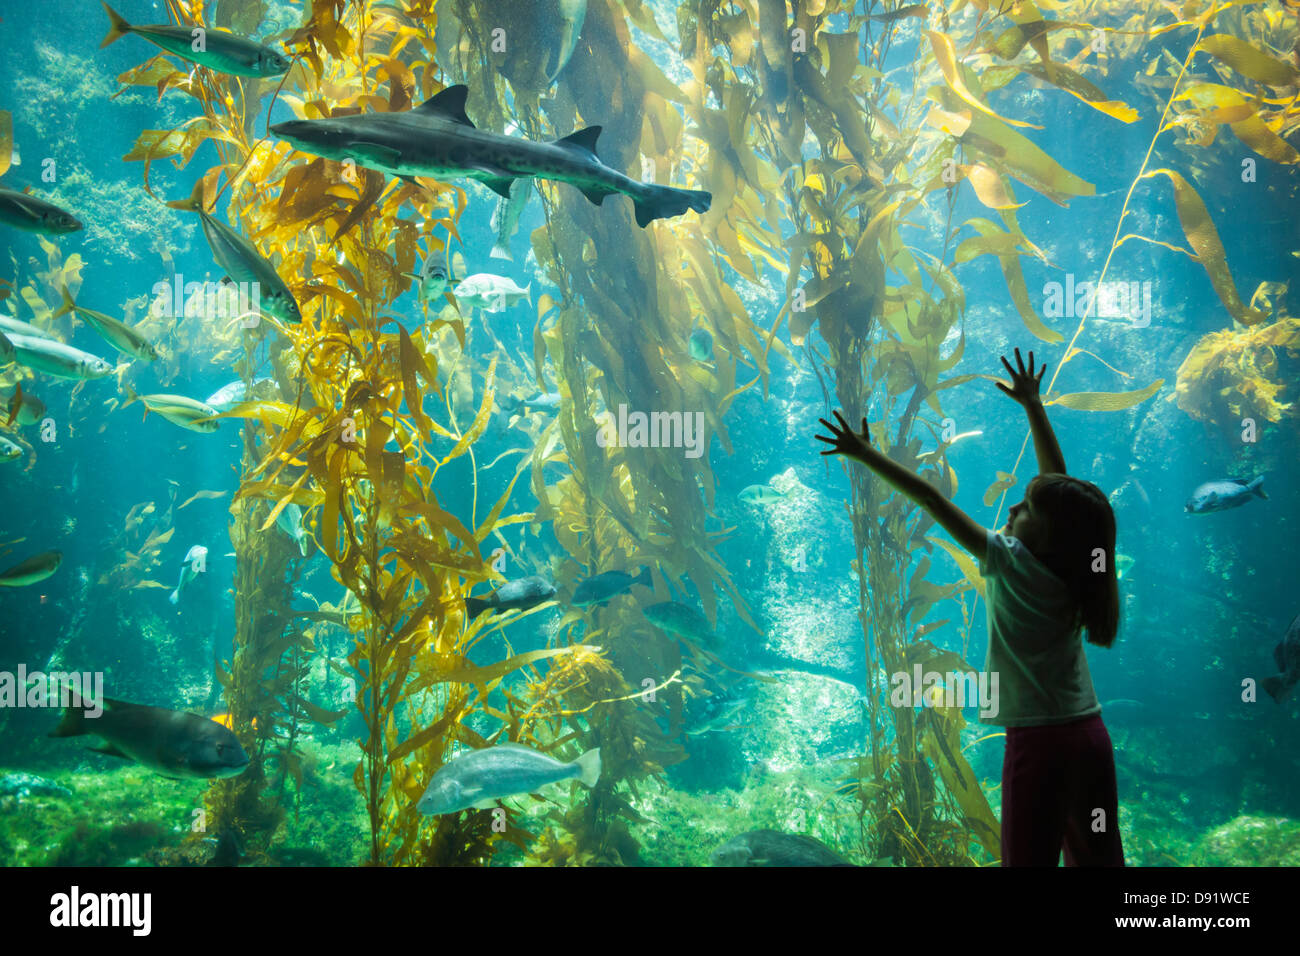 Amazed Young Girl Standing Up Against Large Aquarium Observation Glass Reaching for Leopard Shark. - Stock Image